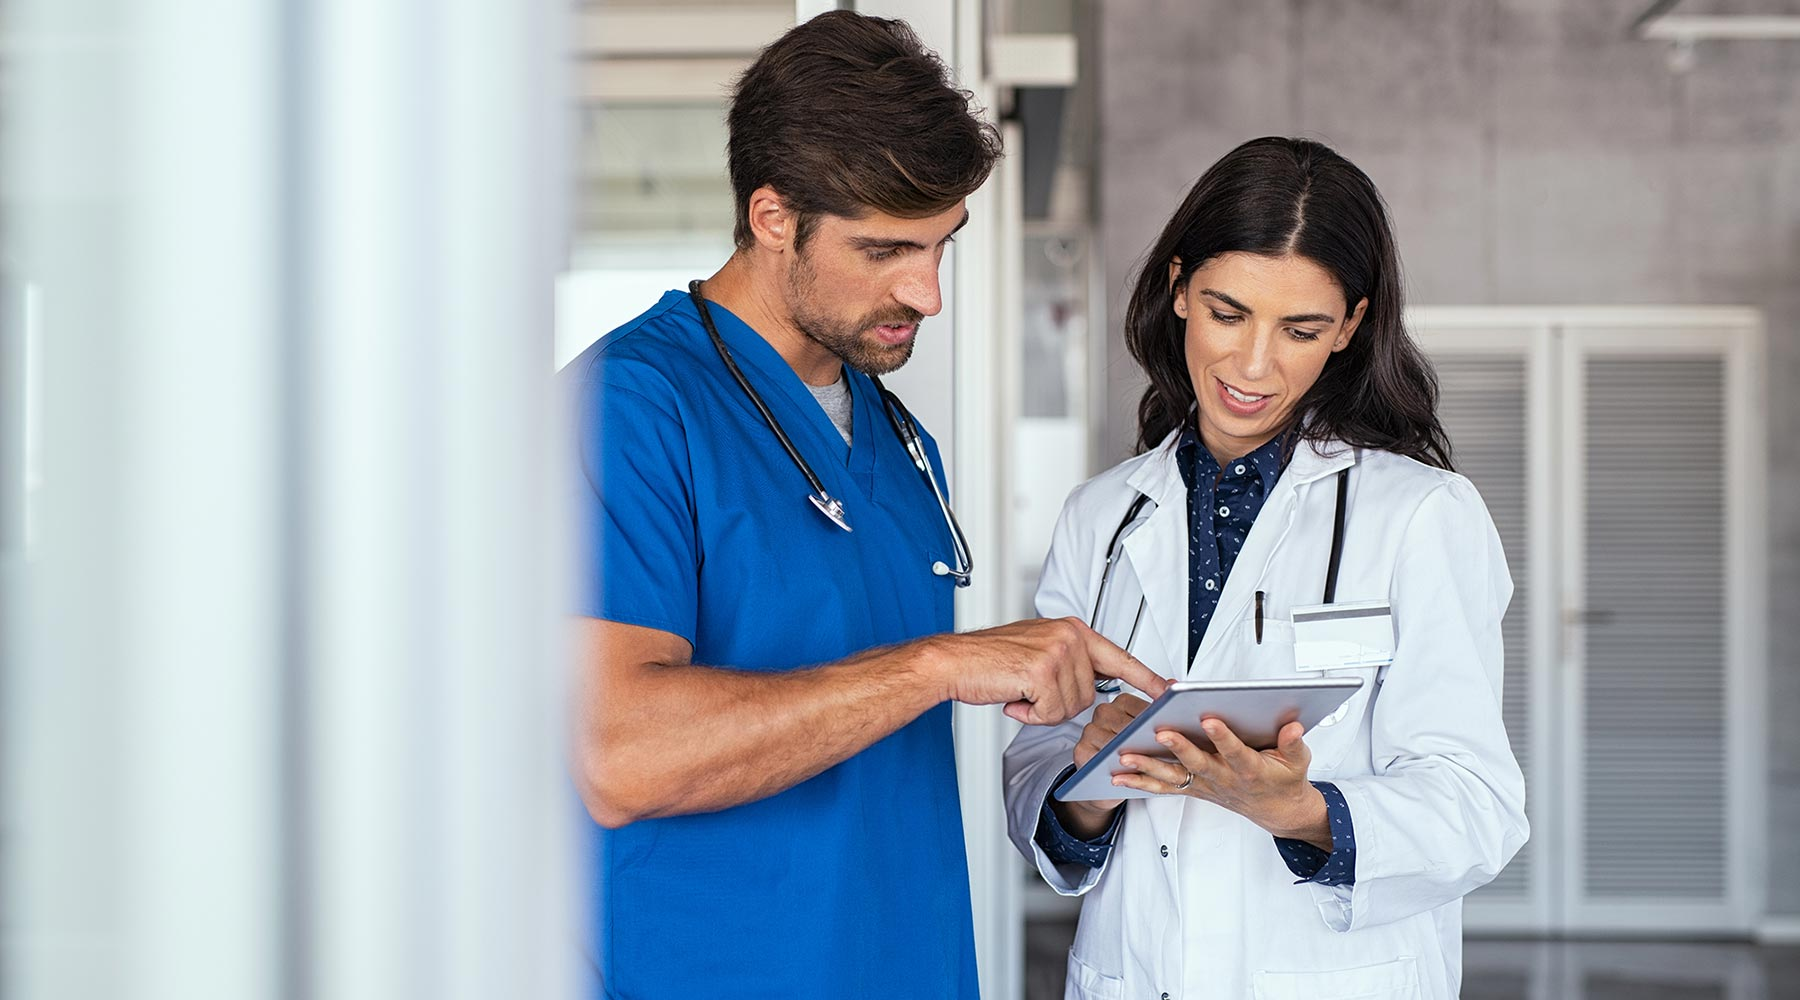 How Much Does Physician Assistant Malpractice Insurance Cost?